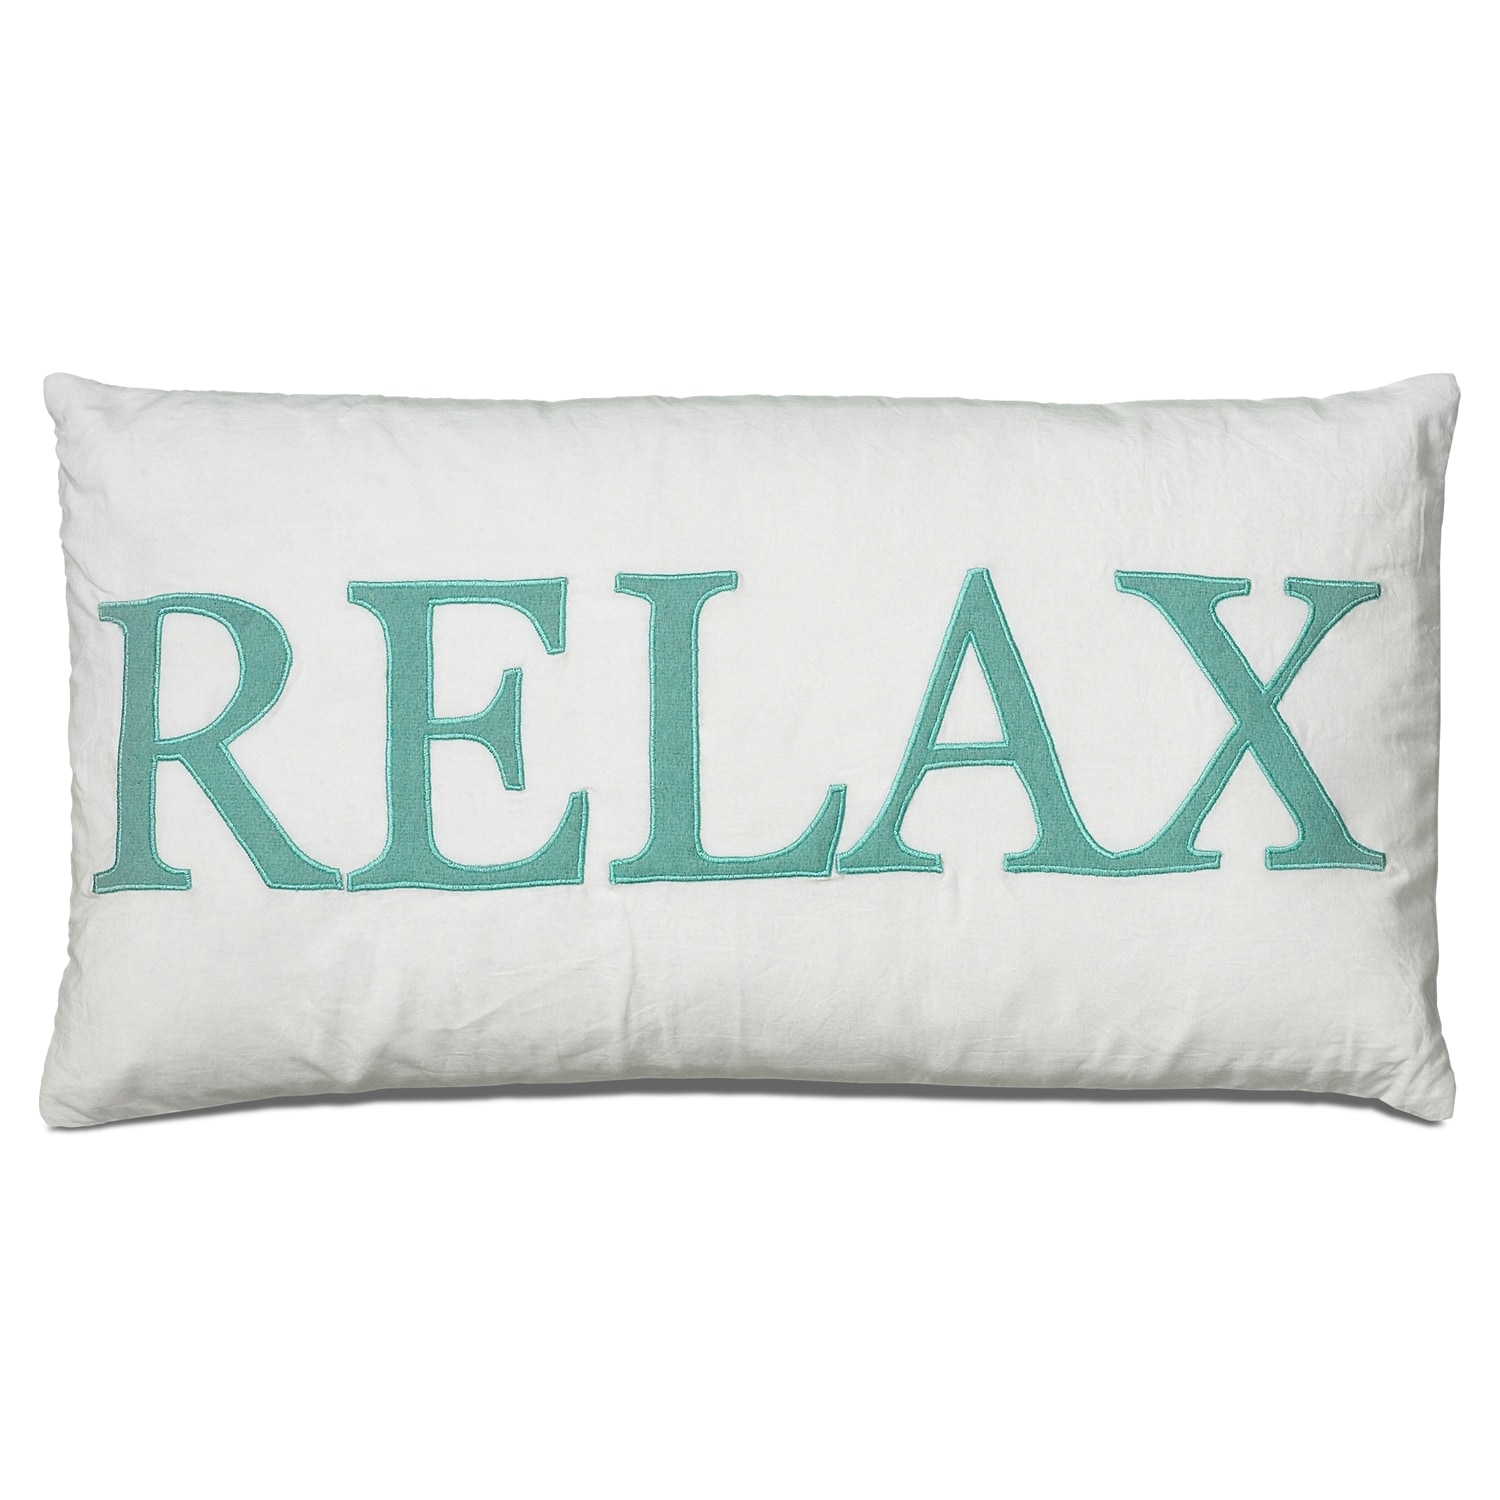 Relax Decorative Pillow